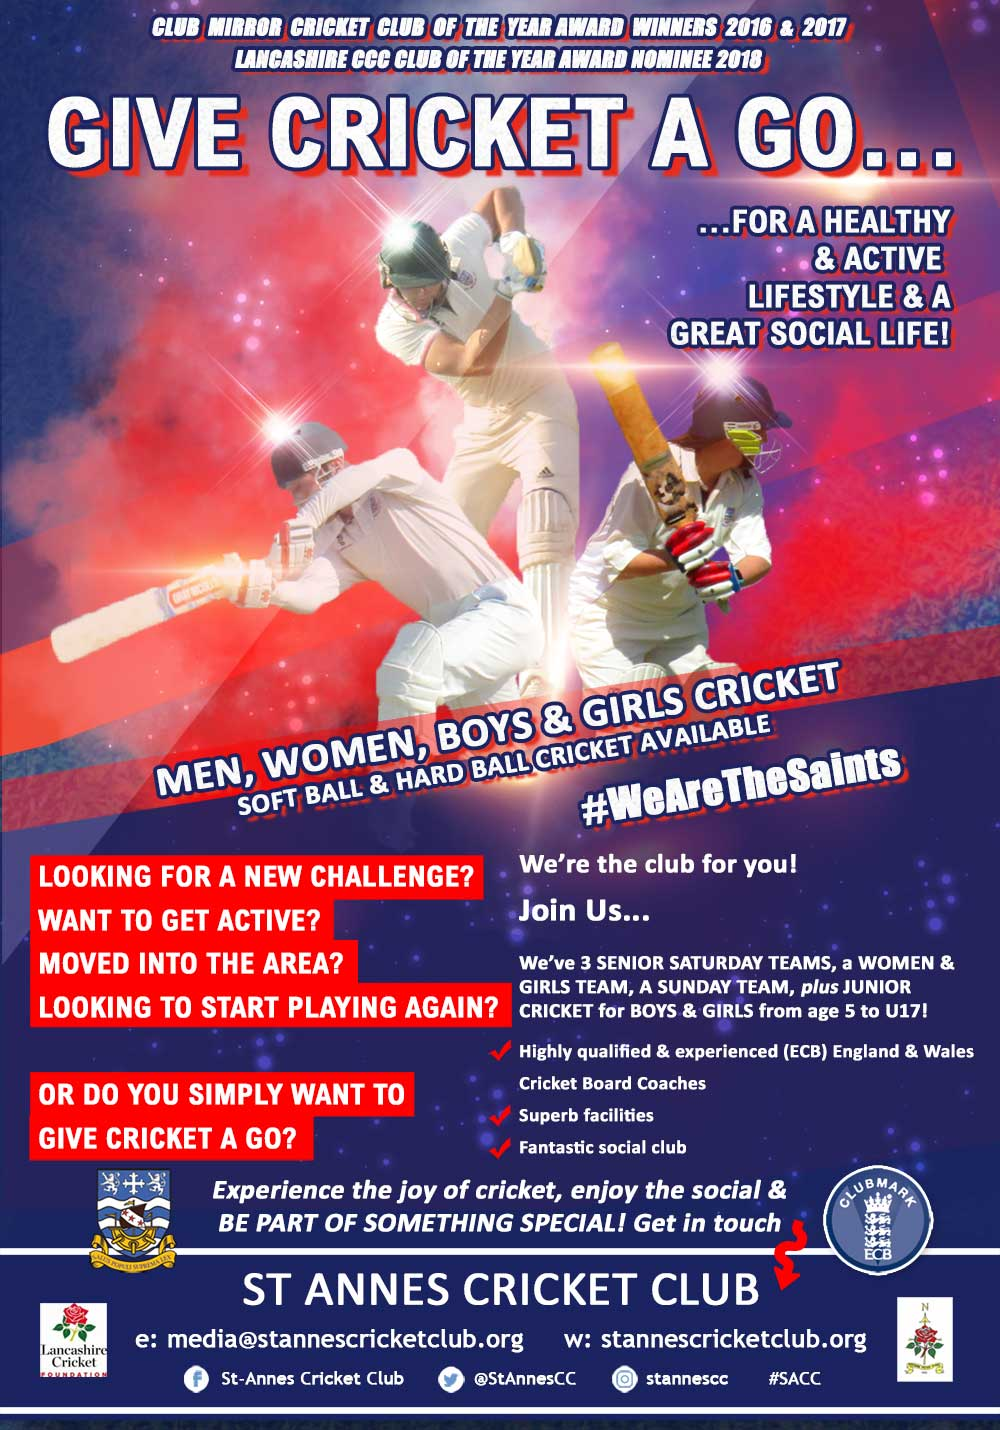 Enjoy the social & give cricket a go!  Soft ball & hardball cricket, beginners & experienced senior & junior players welcome at St Annes CC!